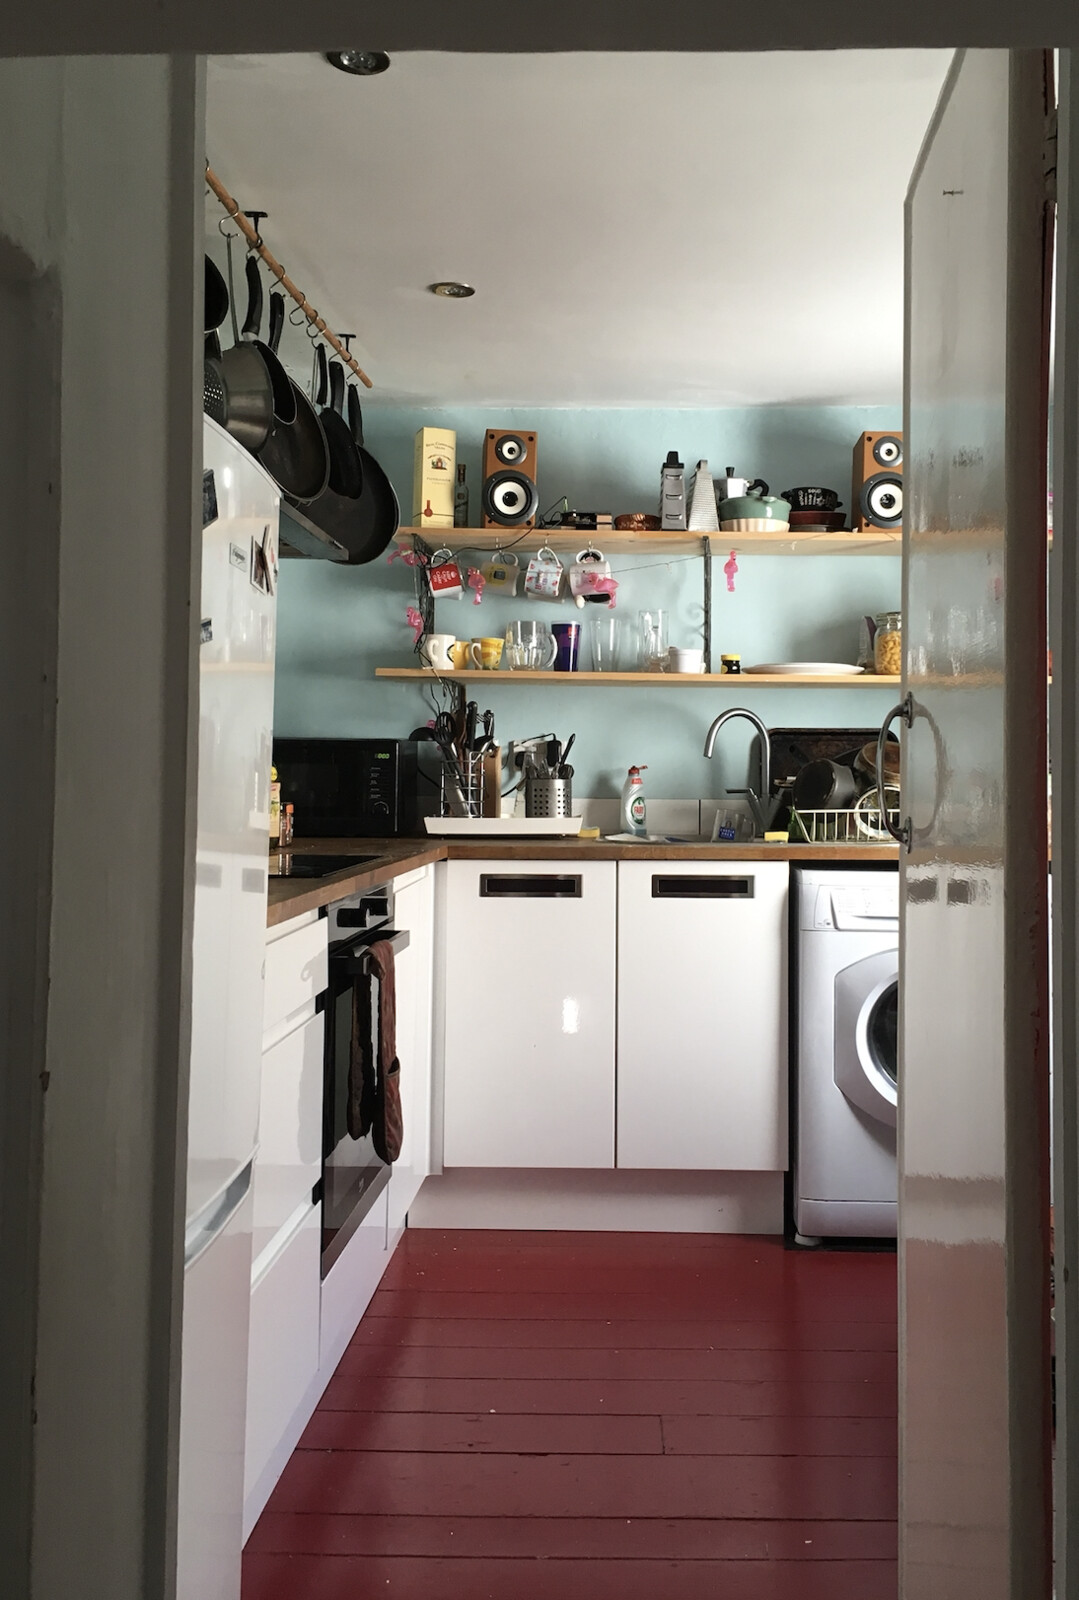 here's the reference, my actual cosy kitchen!